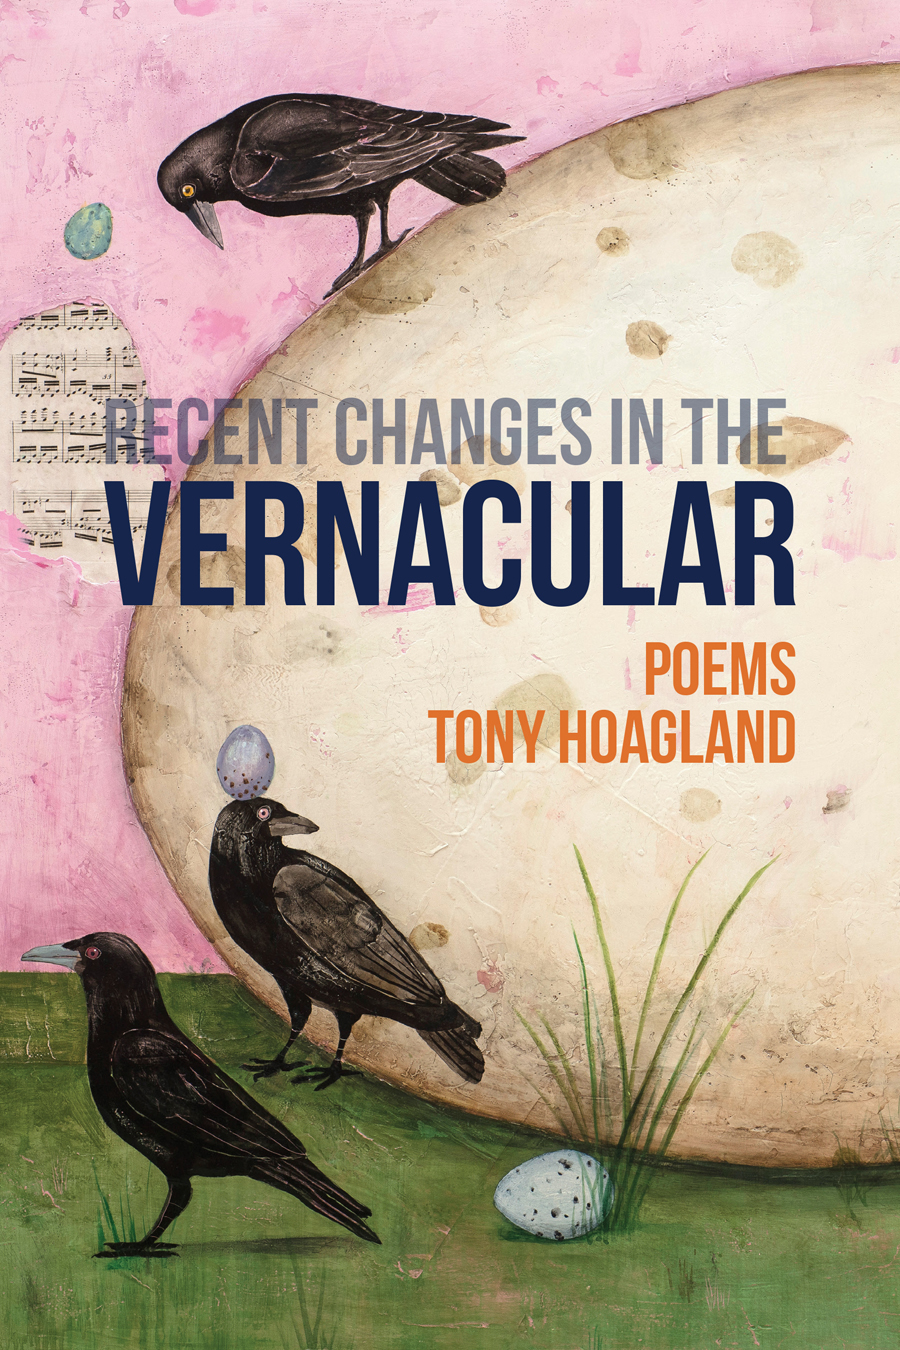 Recent Changes in the Vernacular (Tres Chicas Books, 2017) By Tony Hoagland